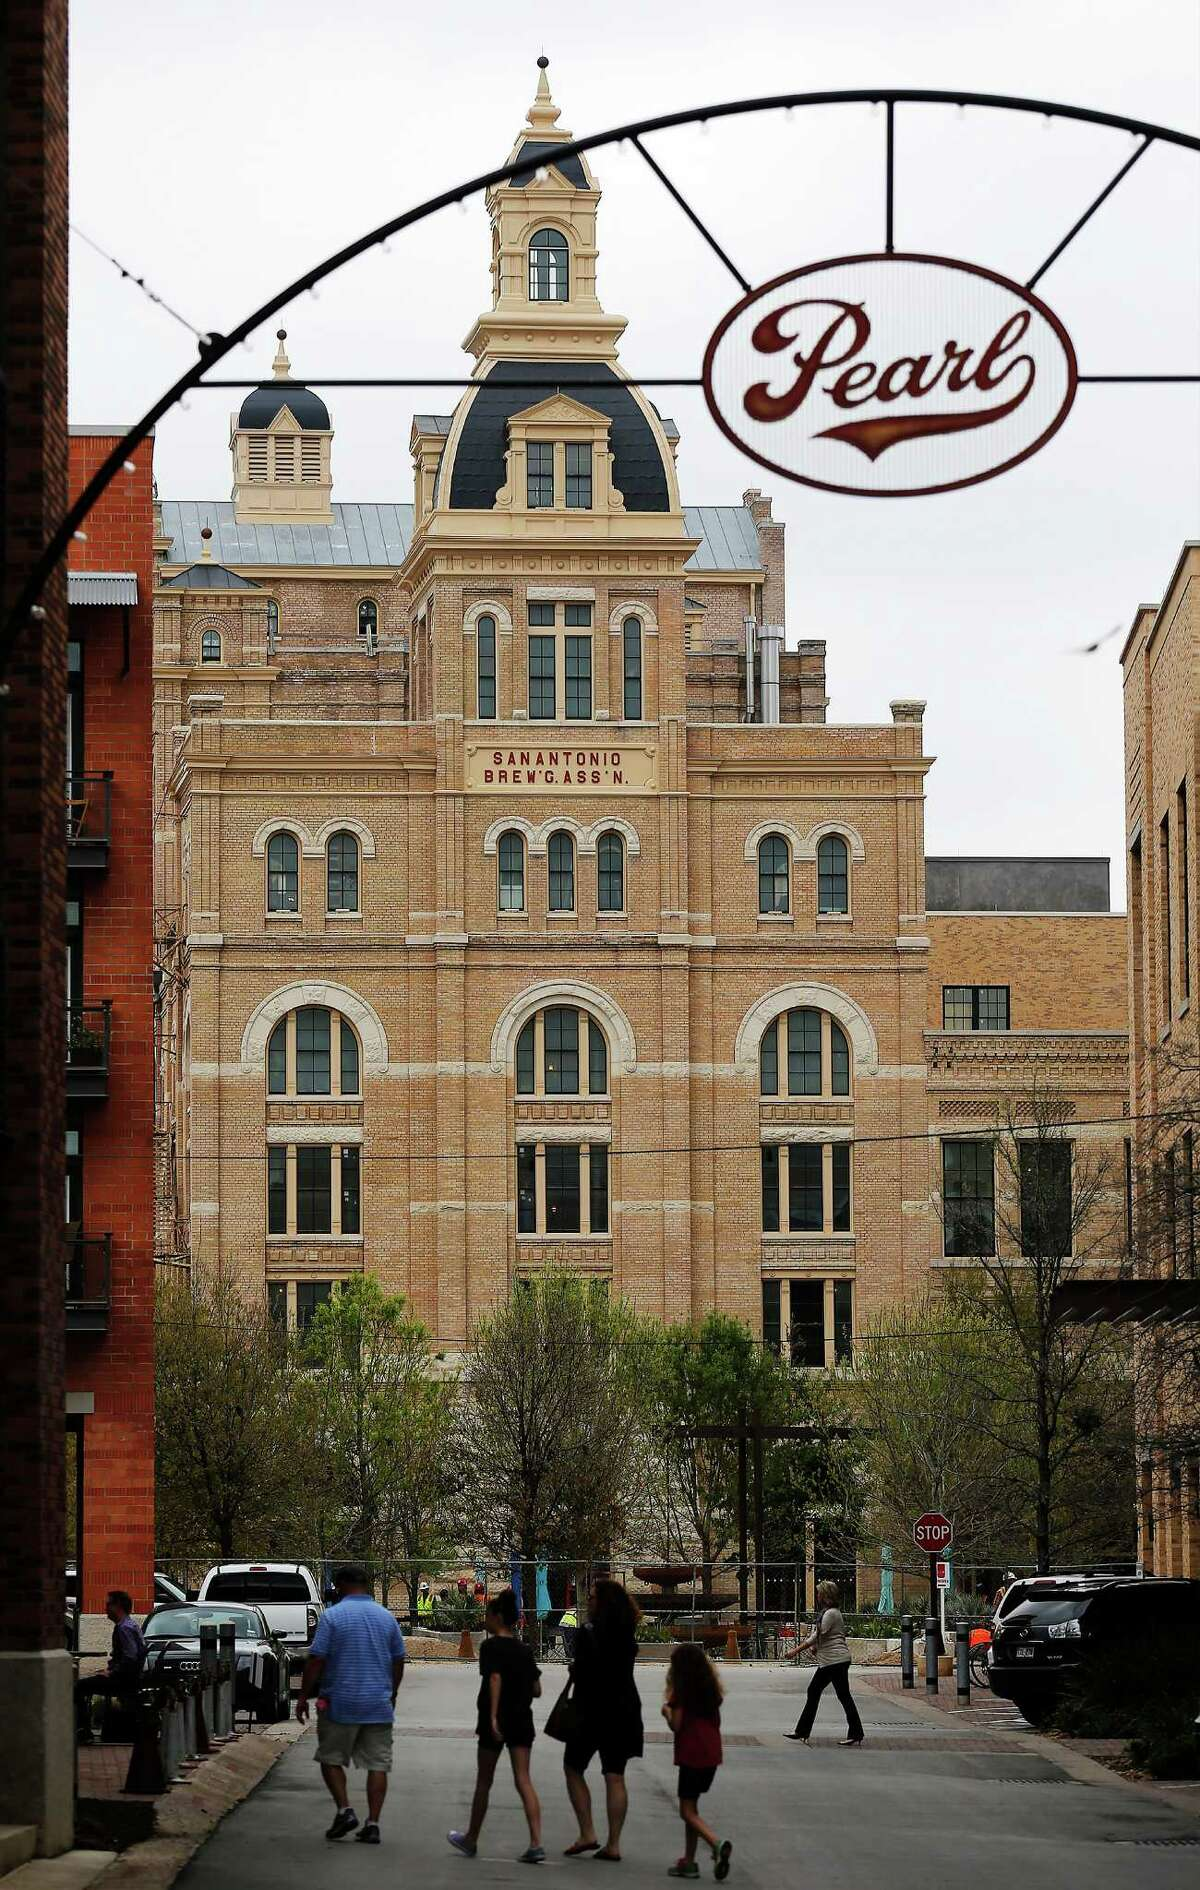 The Pearl has proven to be San Antonio's newest hot spot with its mixed-use development - residential spaces, retail, restaurants and bars all within close walking distance. Local government representatives say they would like to see more multi-purpose areas developed in or near the urban core.